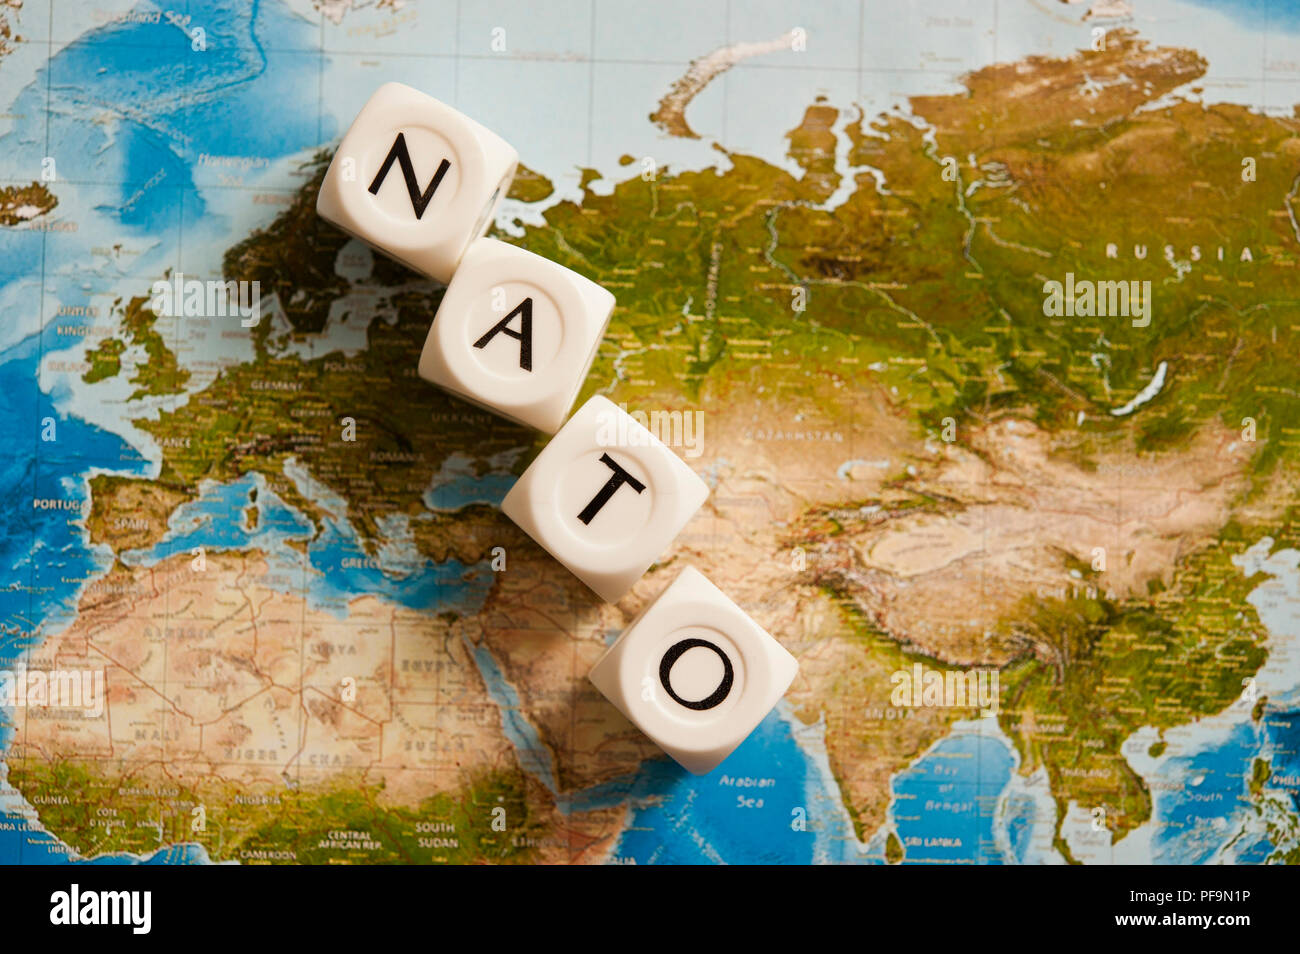 NATO spelled with dice on a world map, concept for the North Atlantic Treaty Organization expanding its members - Stock Image